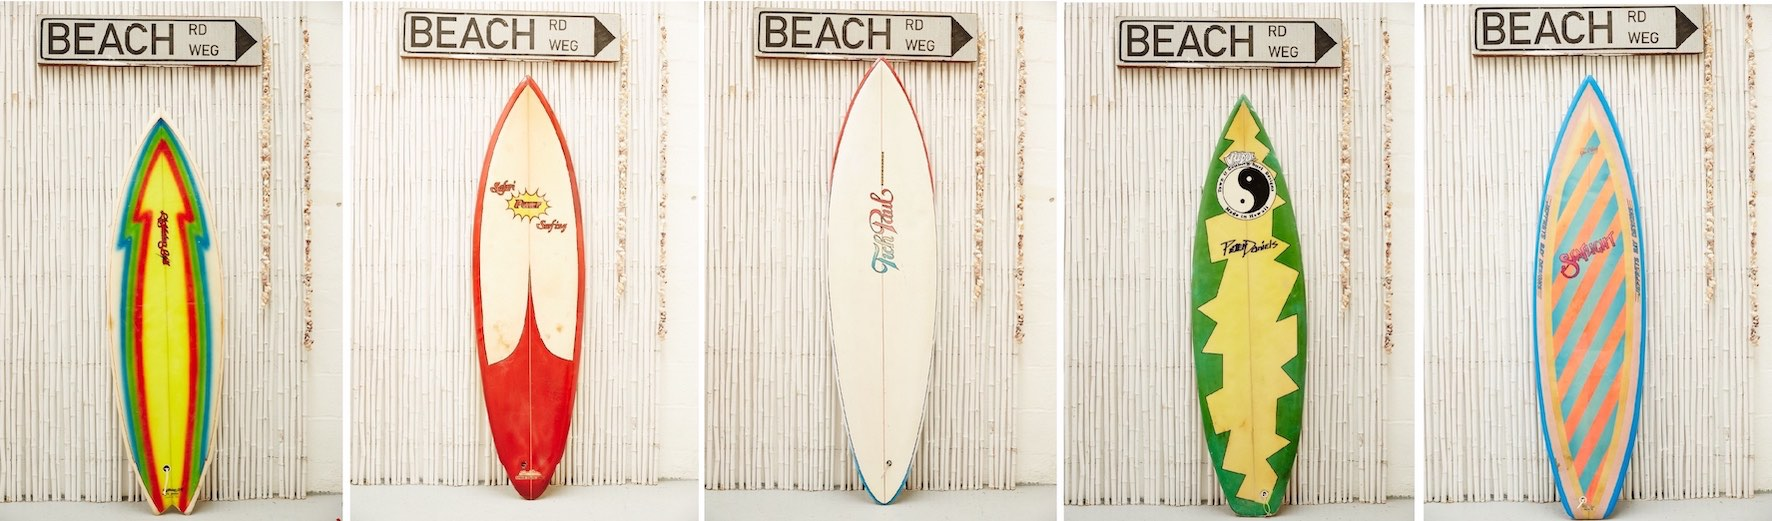 Retro surfboards that will used at the 2018 Rolling Retro surfing event